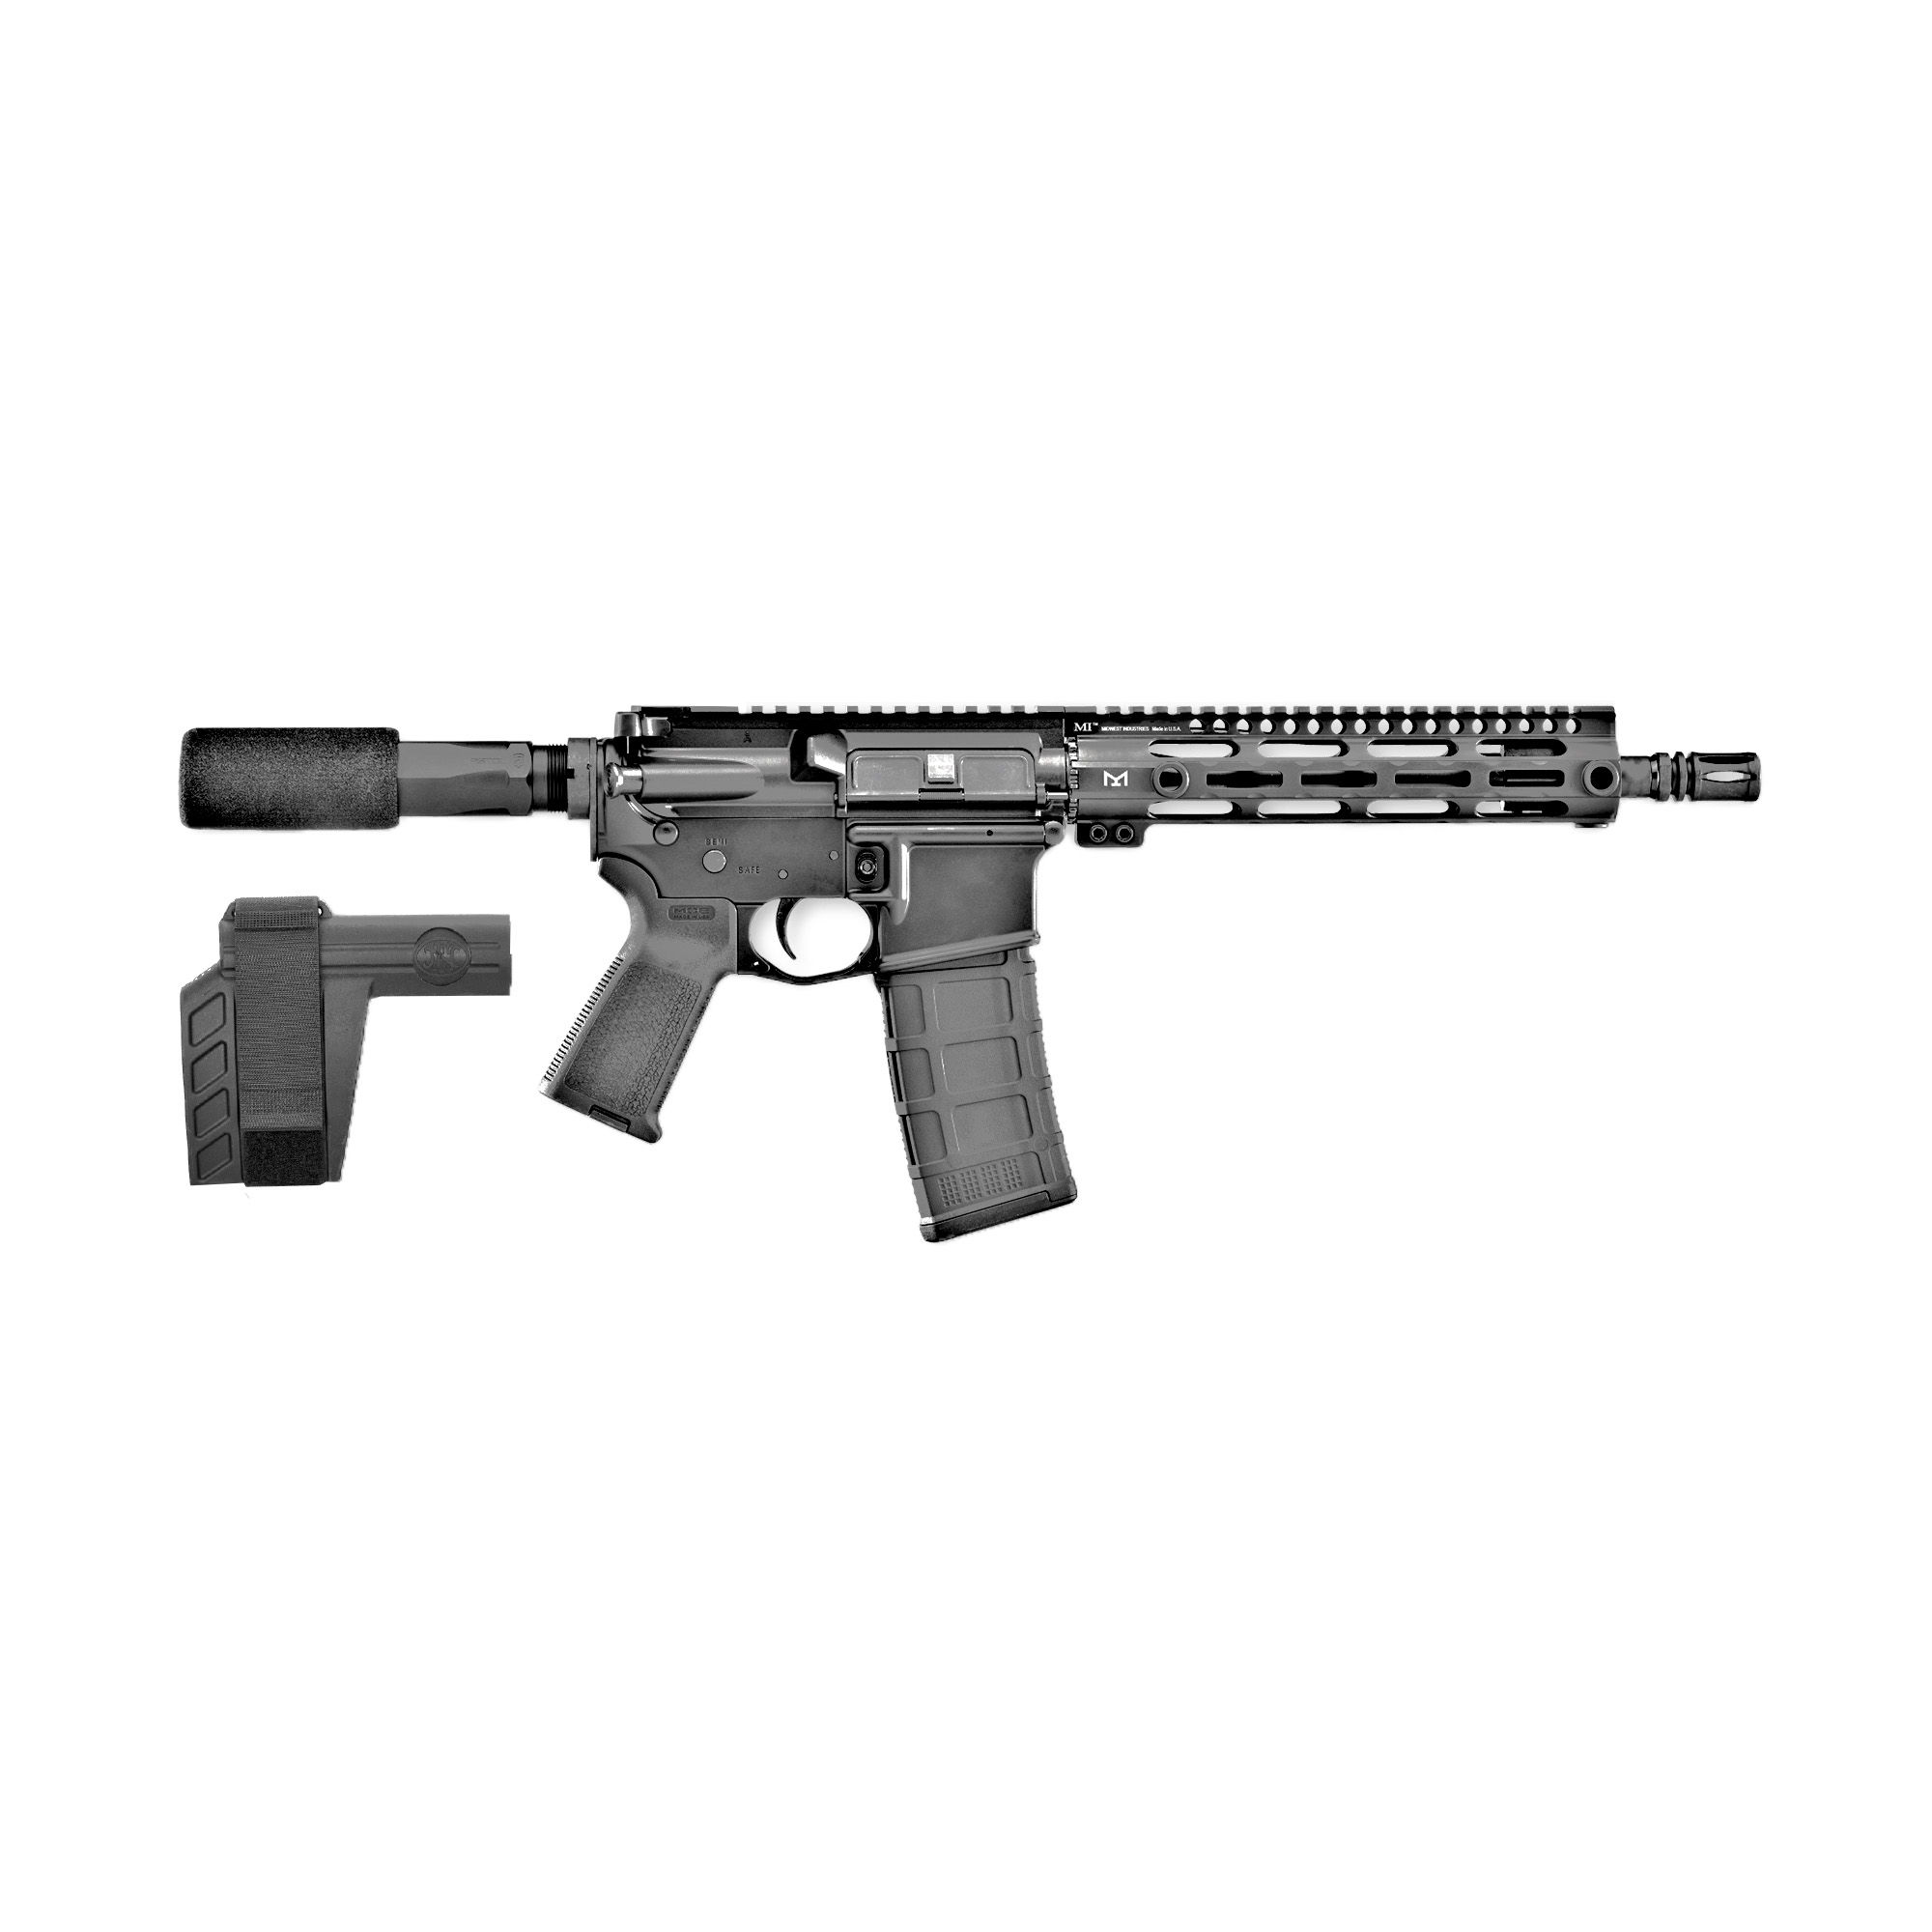 """The FN 15(R) Pistol chambered in 5.56x45mm NATO offers a 10.5-inch"""" cold hammer-forged"""" chrome-lined barrel with 1:7 twist and carbine-length gas system that is optimized to get the highest level of performance out of the 5.56 cartridge in terms of accuracy and reliability. The 9-inch M-LOK rail"""" fixed low-profile stainless-steel gas block"""" FN combat trigger"""" weighing in between 4.5-7.75 lbs."""" and SBX-K Pistol Stabilizing Brace makes this little carbine-caliber pistol a breeze to shoot."""